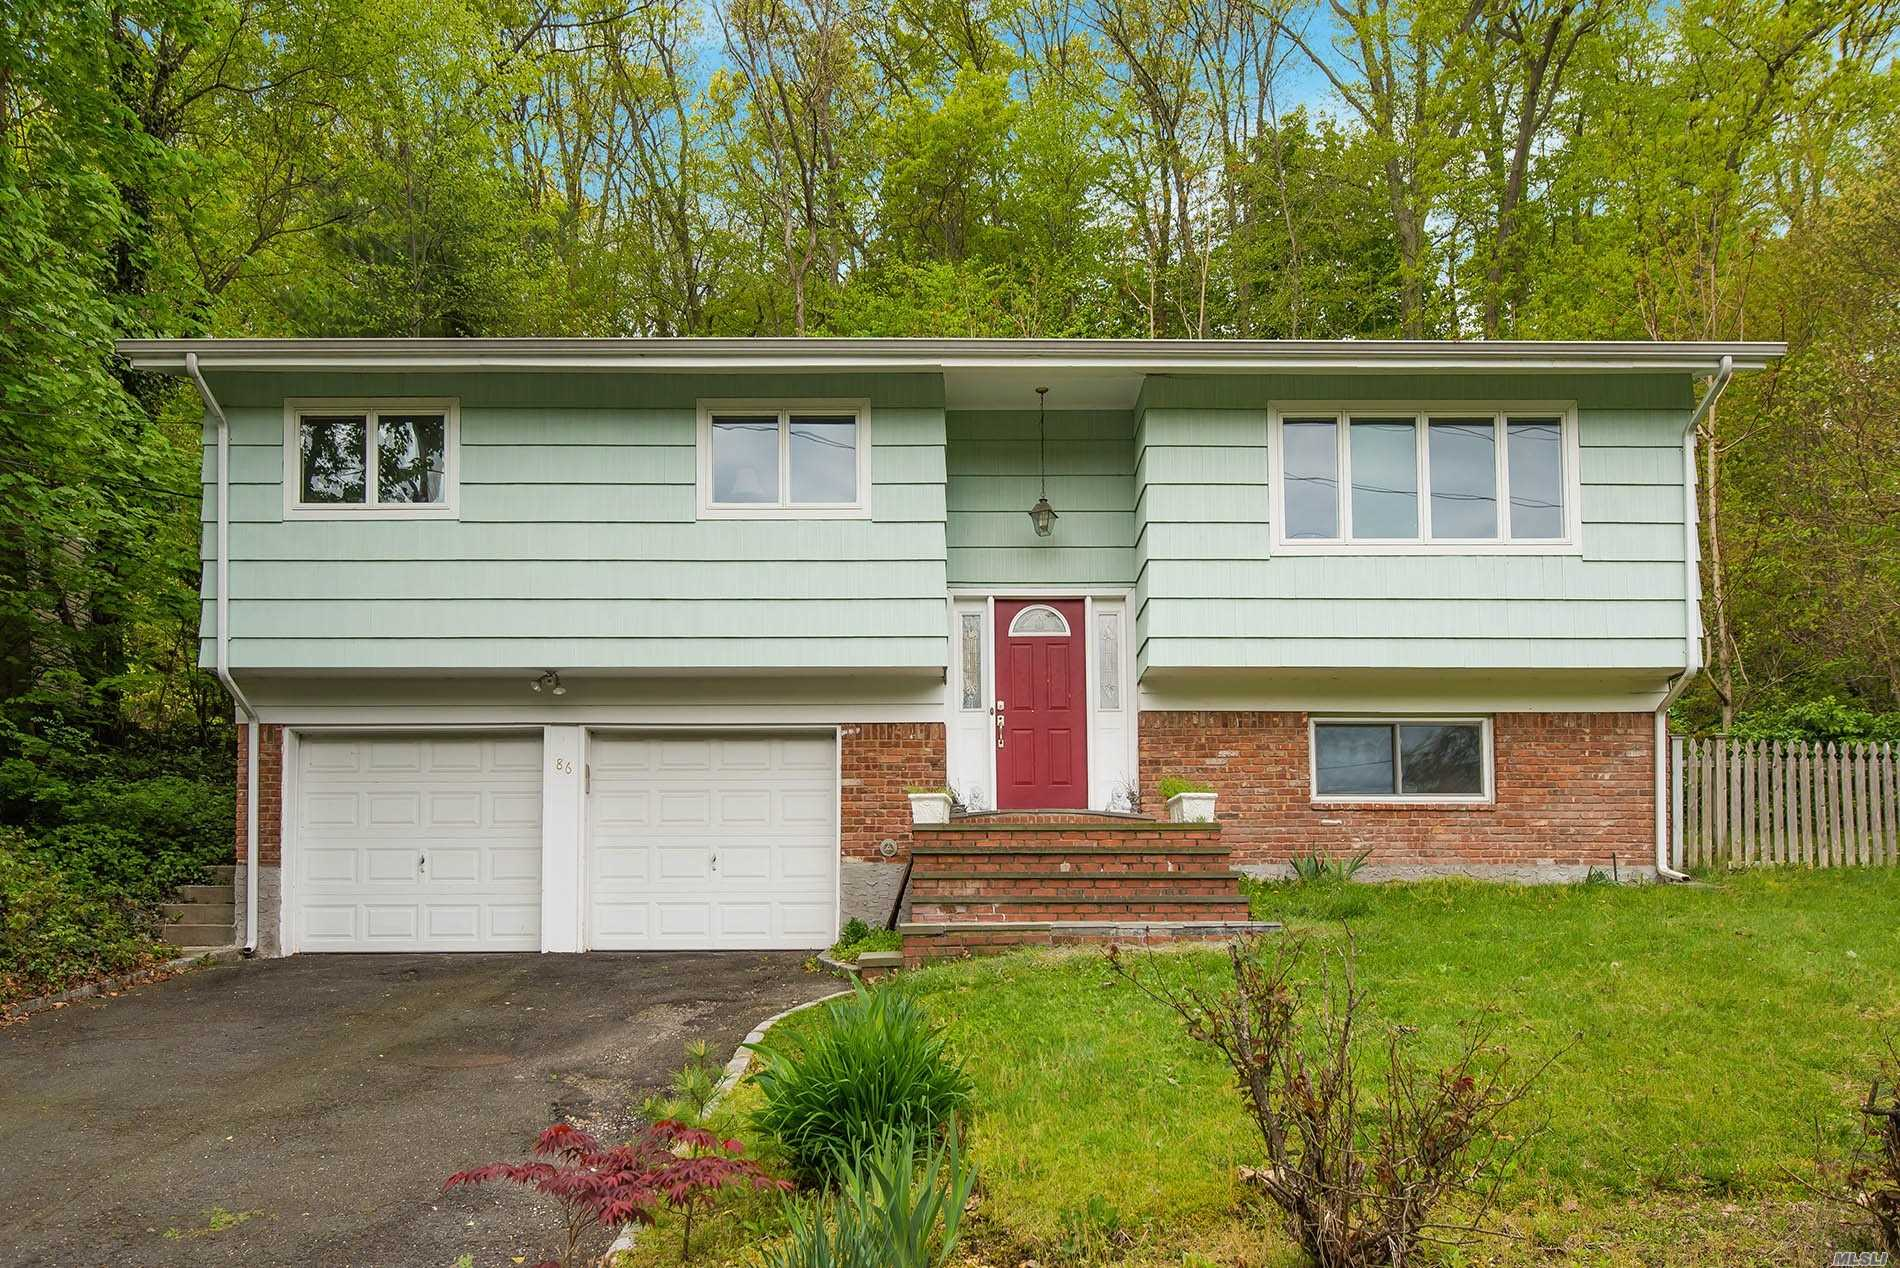 Updated 3 Bedroom, 2.5 Bath, Hi Ranch Boasts Updated Windows & Roof. Sunny EIK w/ Breakfast Nook & Stainless Steel Appliances. Spacious Master Ensuite. Cozy Lower Level Den w/FP, 2 Car Garage.Central A/C. Beautiful Patio For Entertaining. Convenient Location & Oyster Bay-East Norwich School District.